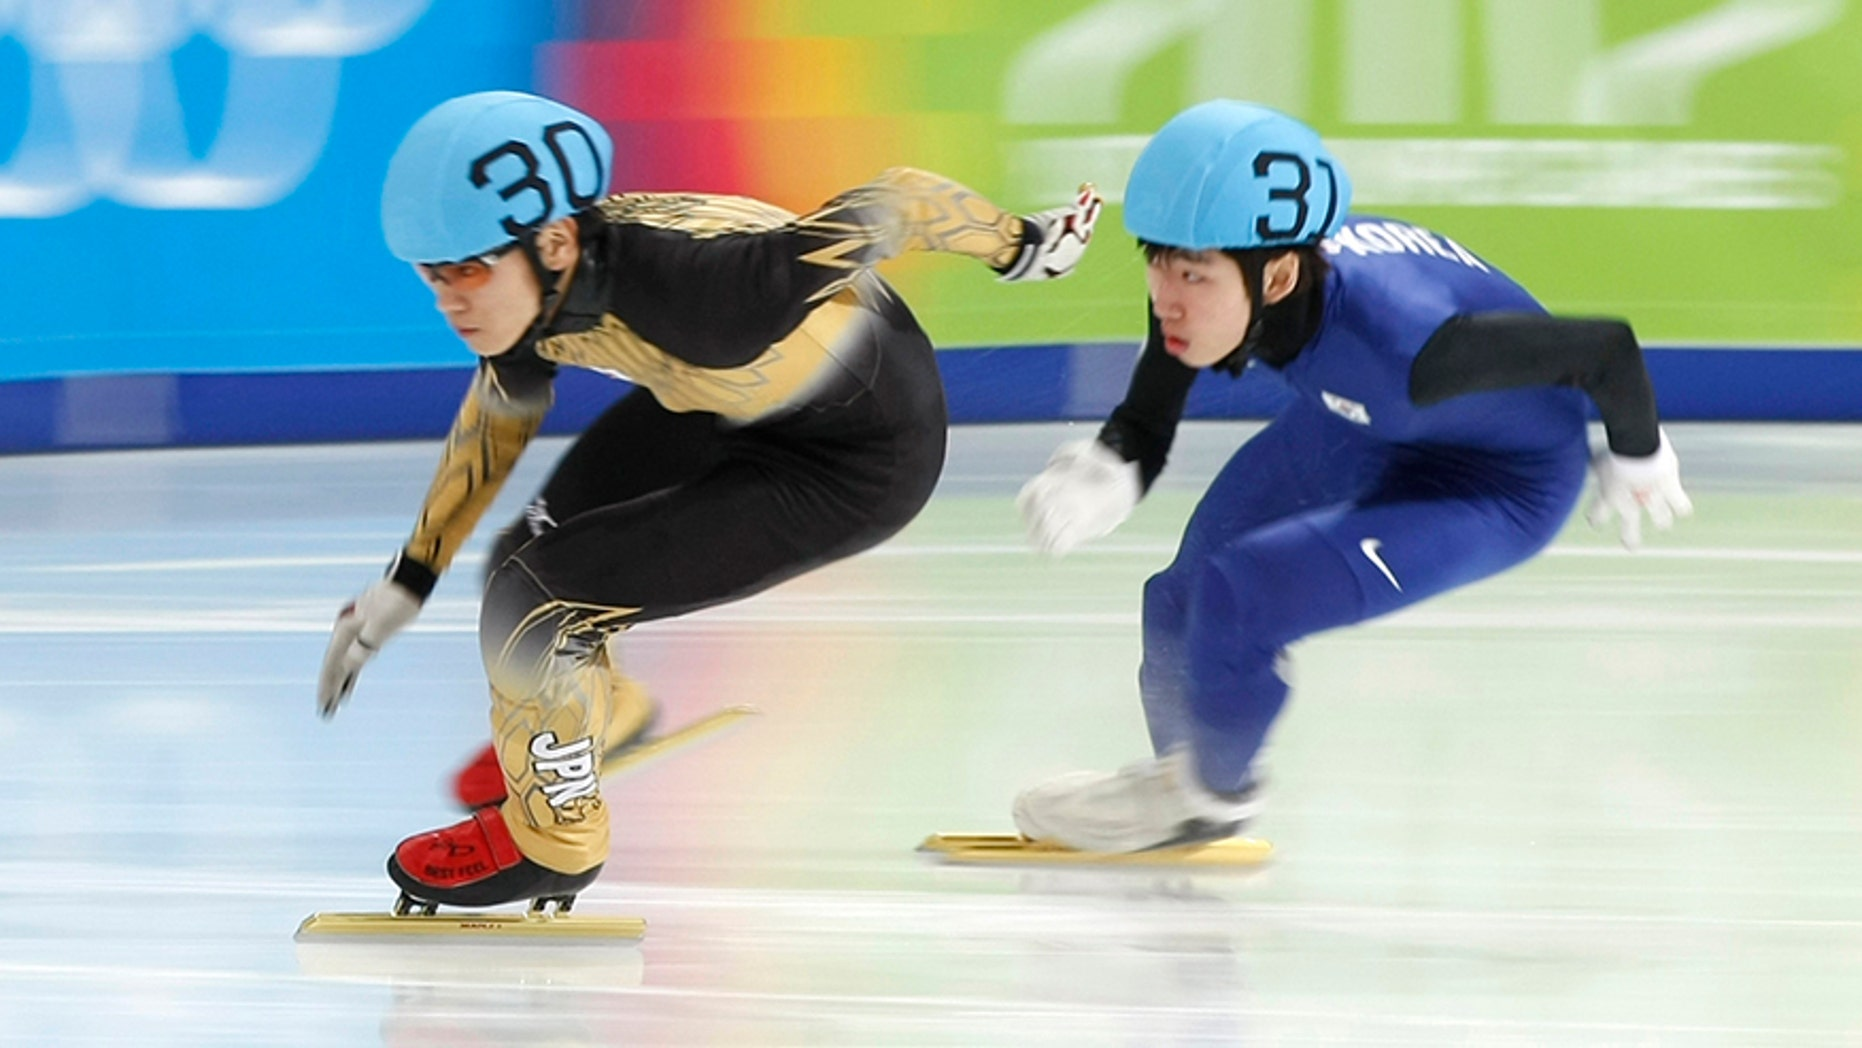 Jan. 19, 2012: Japan's Kei Saito, left, skates ahead of South Korea's Lim Hyo-Jun at the first winter Youth Olympic Games.